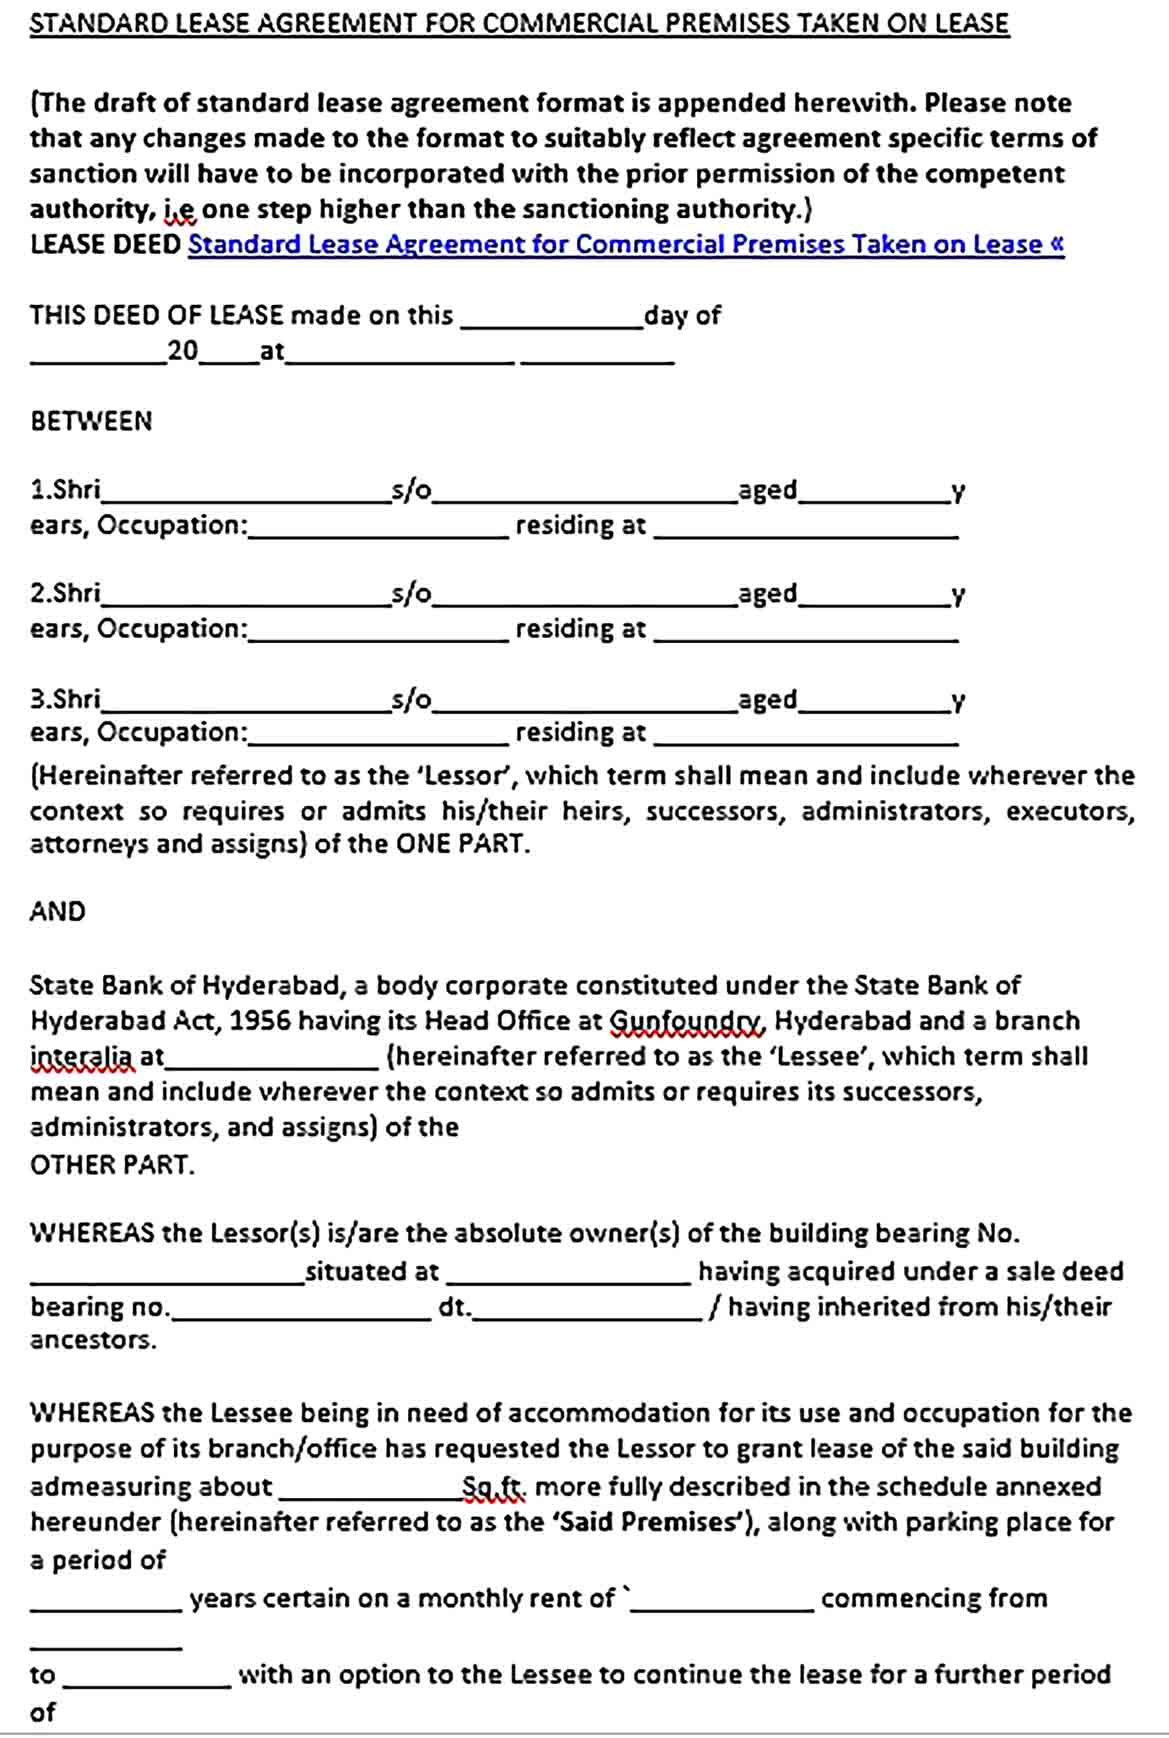 Sample Standard Commercial Lease Agreement